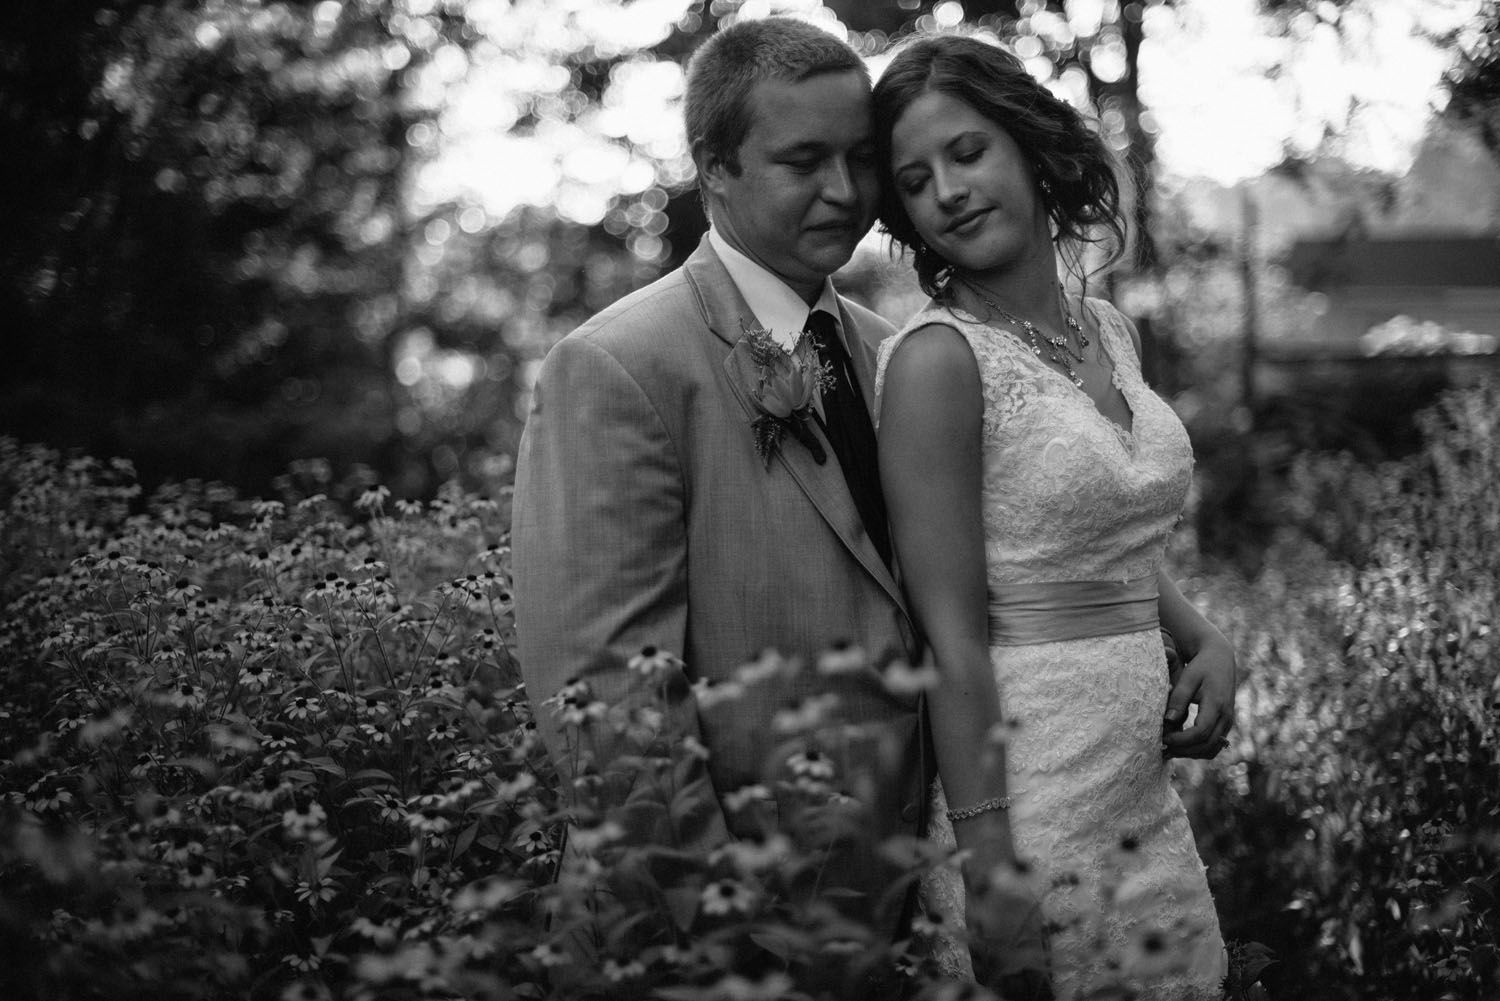 backyard-wedding-photographer-minnesota.jpg